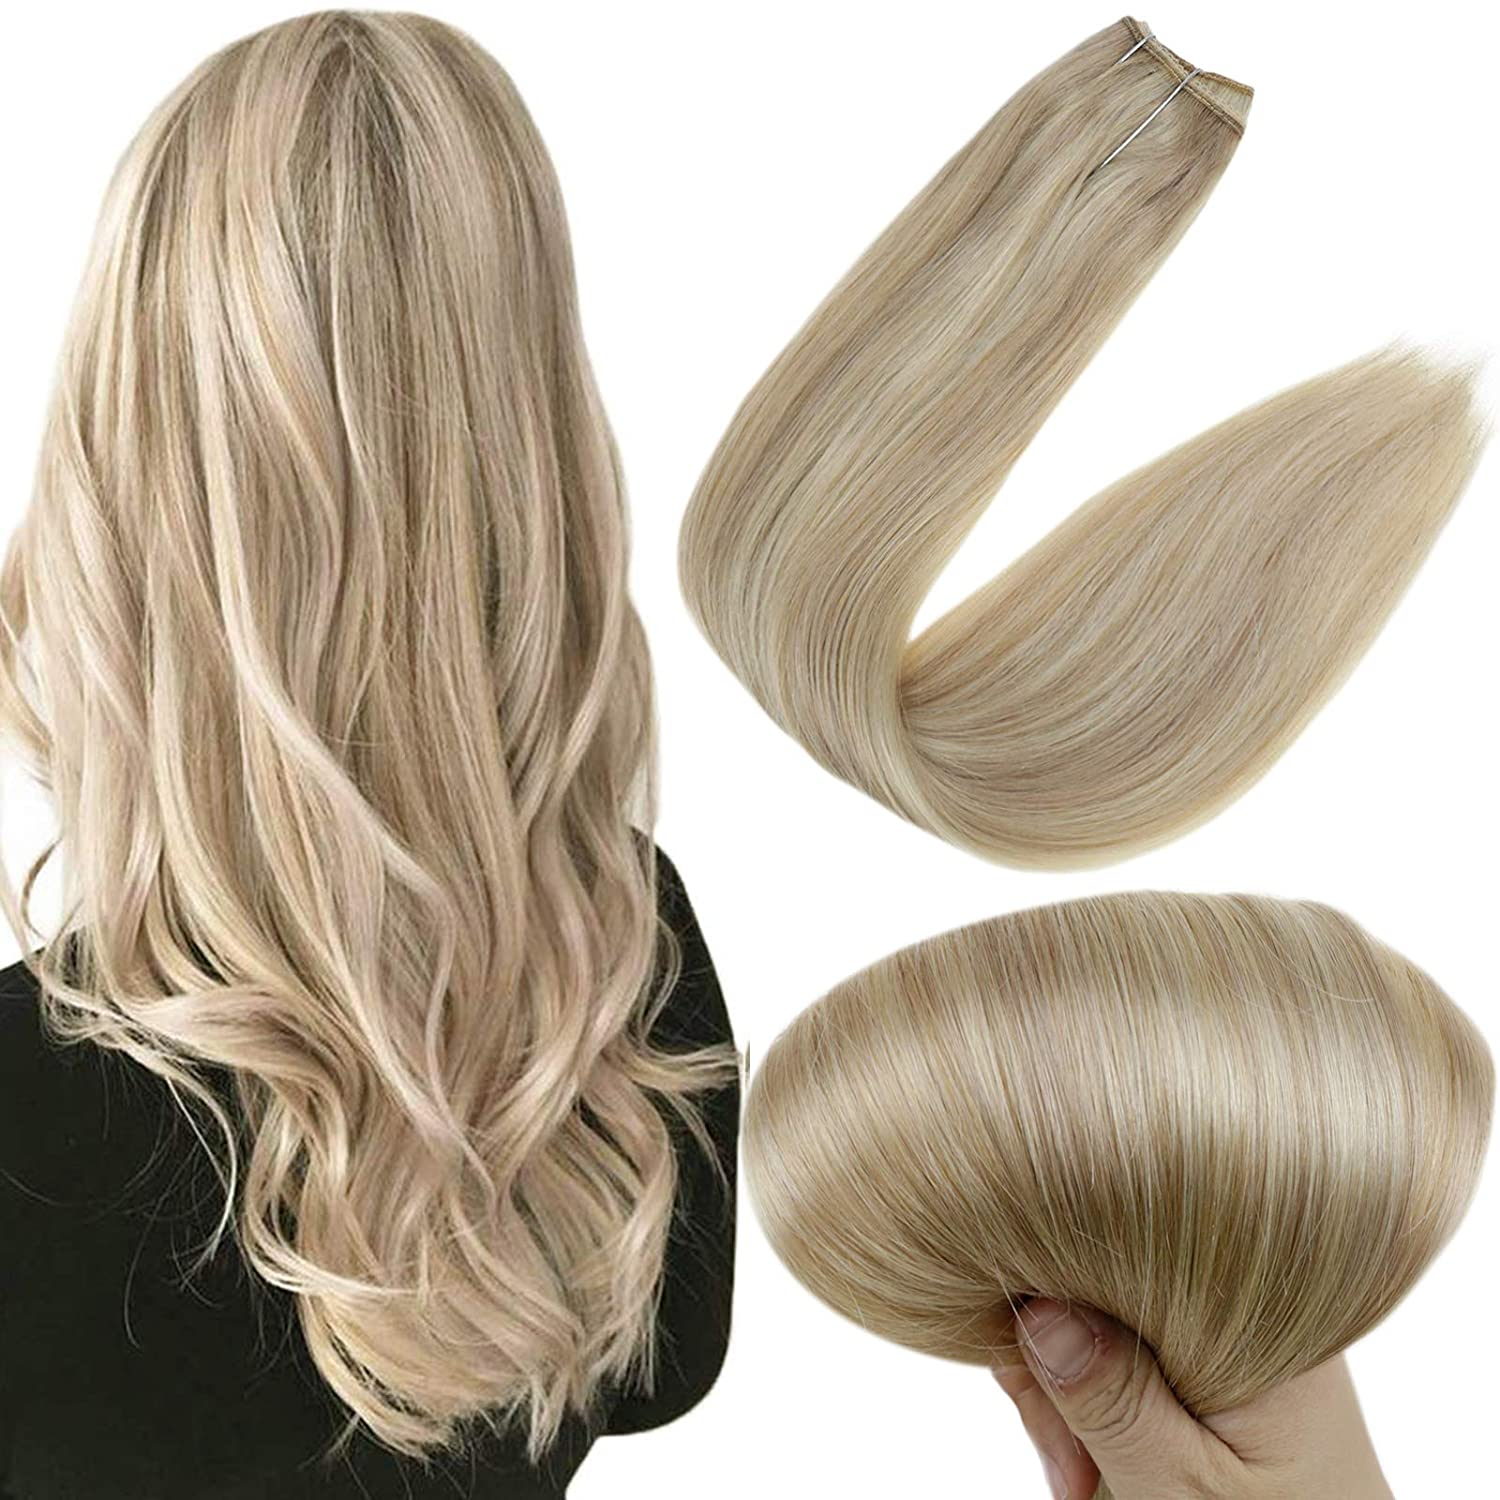 Easyouth One Piece Halo Human Hair Extensions 20 inch 100g per Package Color 18 Ash Blonde Highlighted 613 Yellow Blonde Fishing Line Hair Extensions Remy Hair Wire Extensions Easy to Use for Women